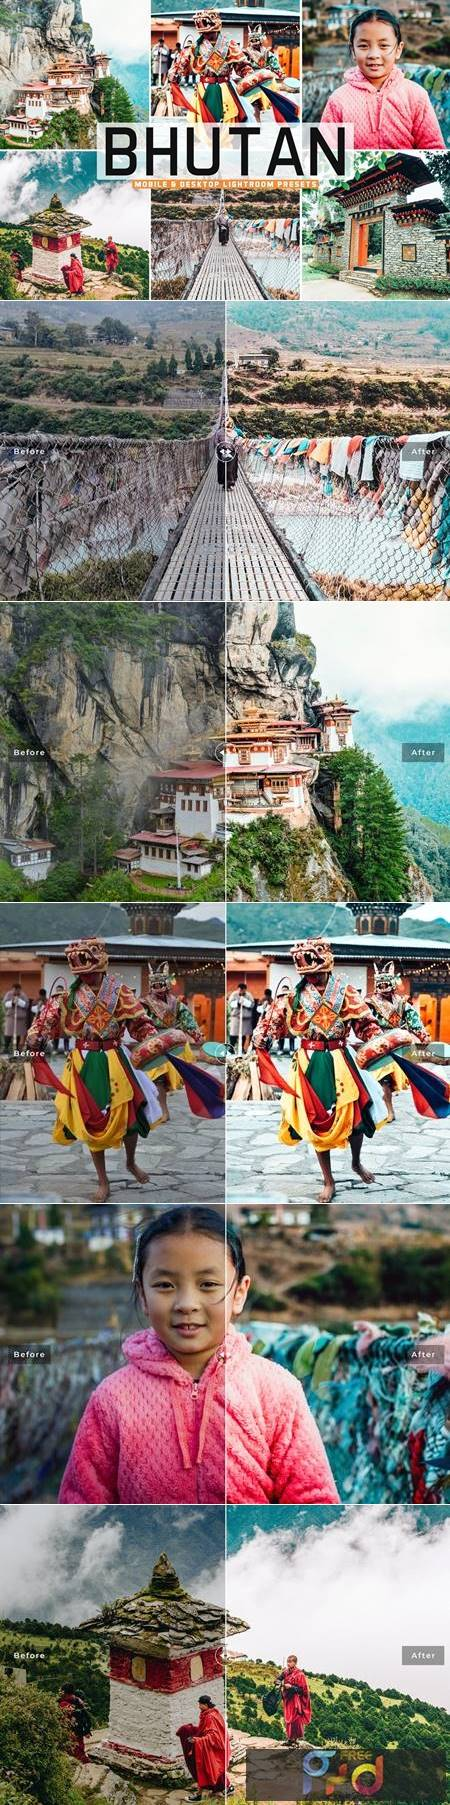 Bhutan Mobile & Desktop Lightroom Presets MPVTXFR 1